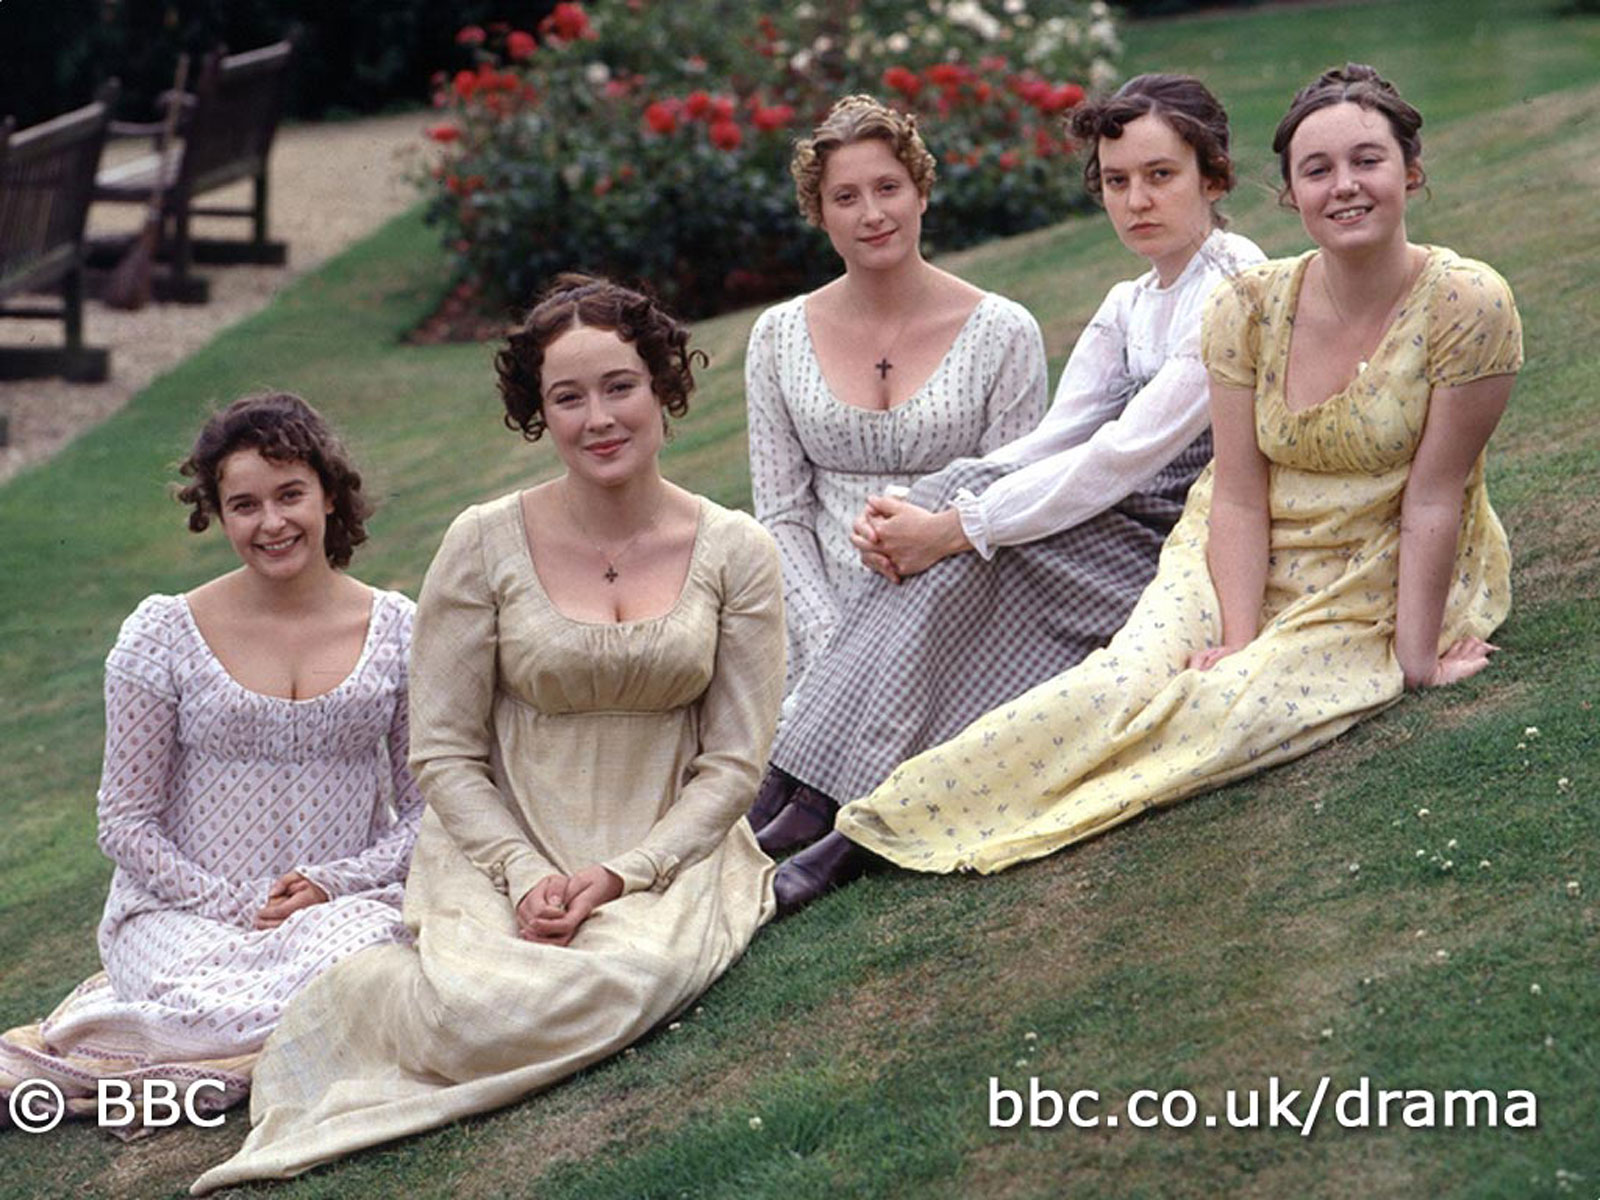 Bbc Drama Pride And Prejudice Photo Gallery